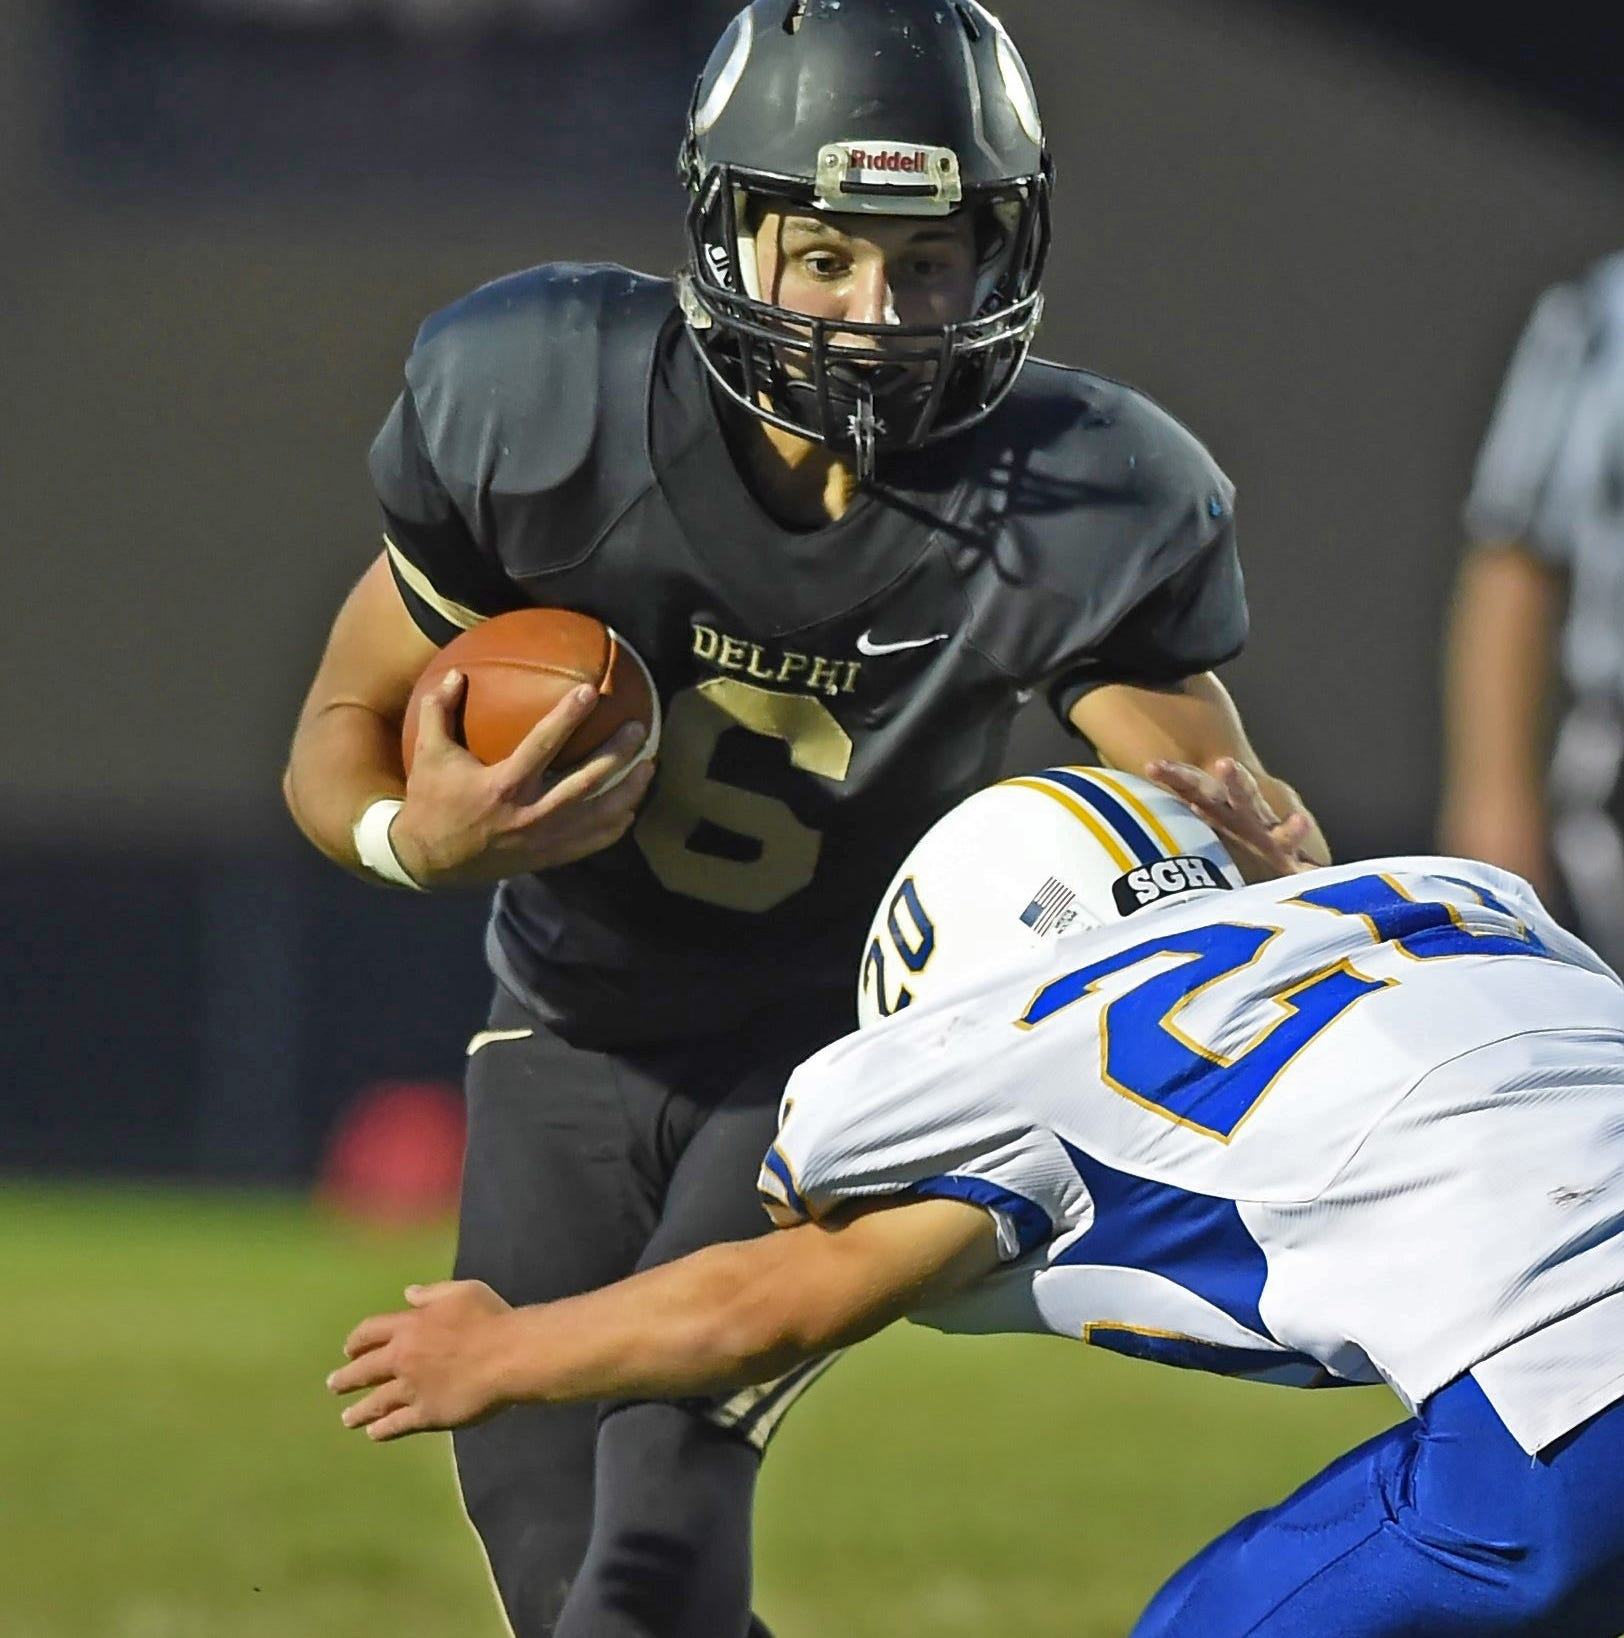 Seth Waters' 5 TD passes  helps Delphi extend unbeaten run